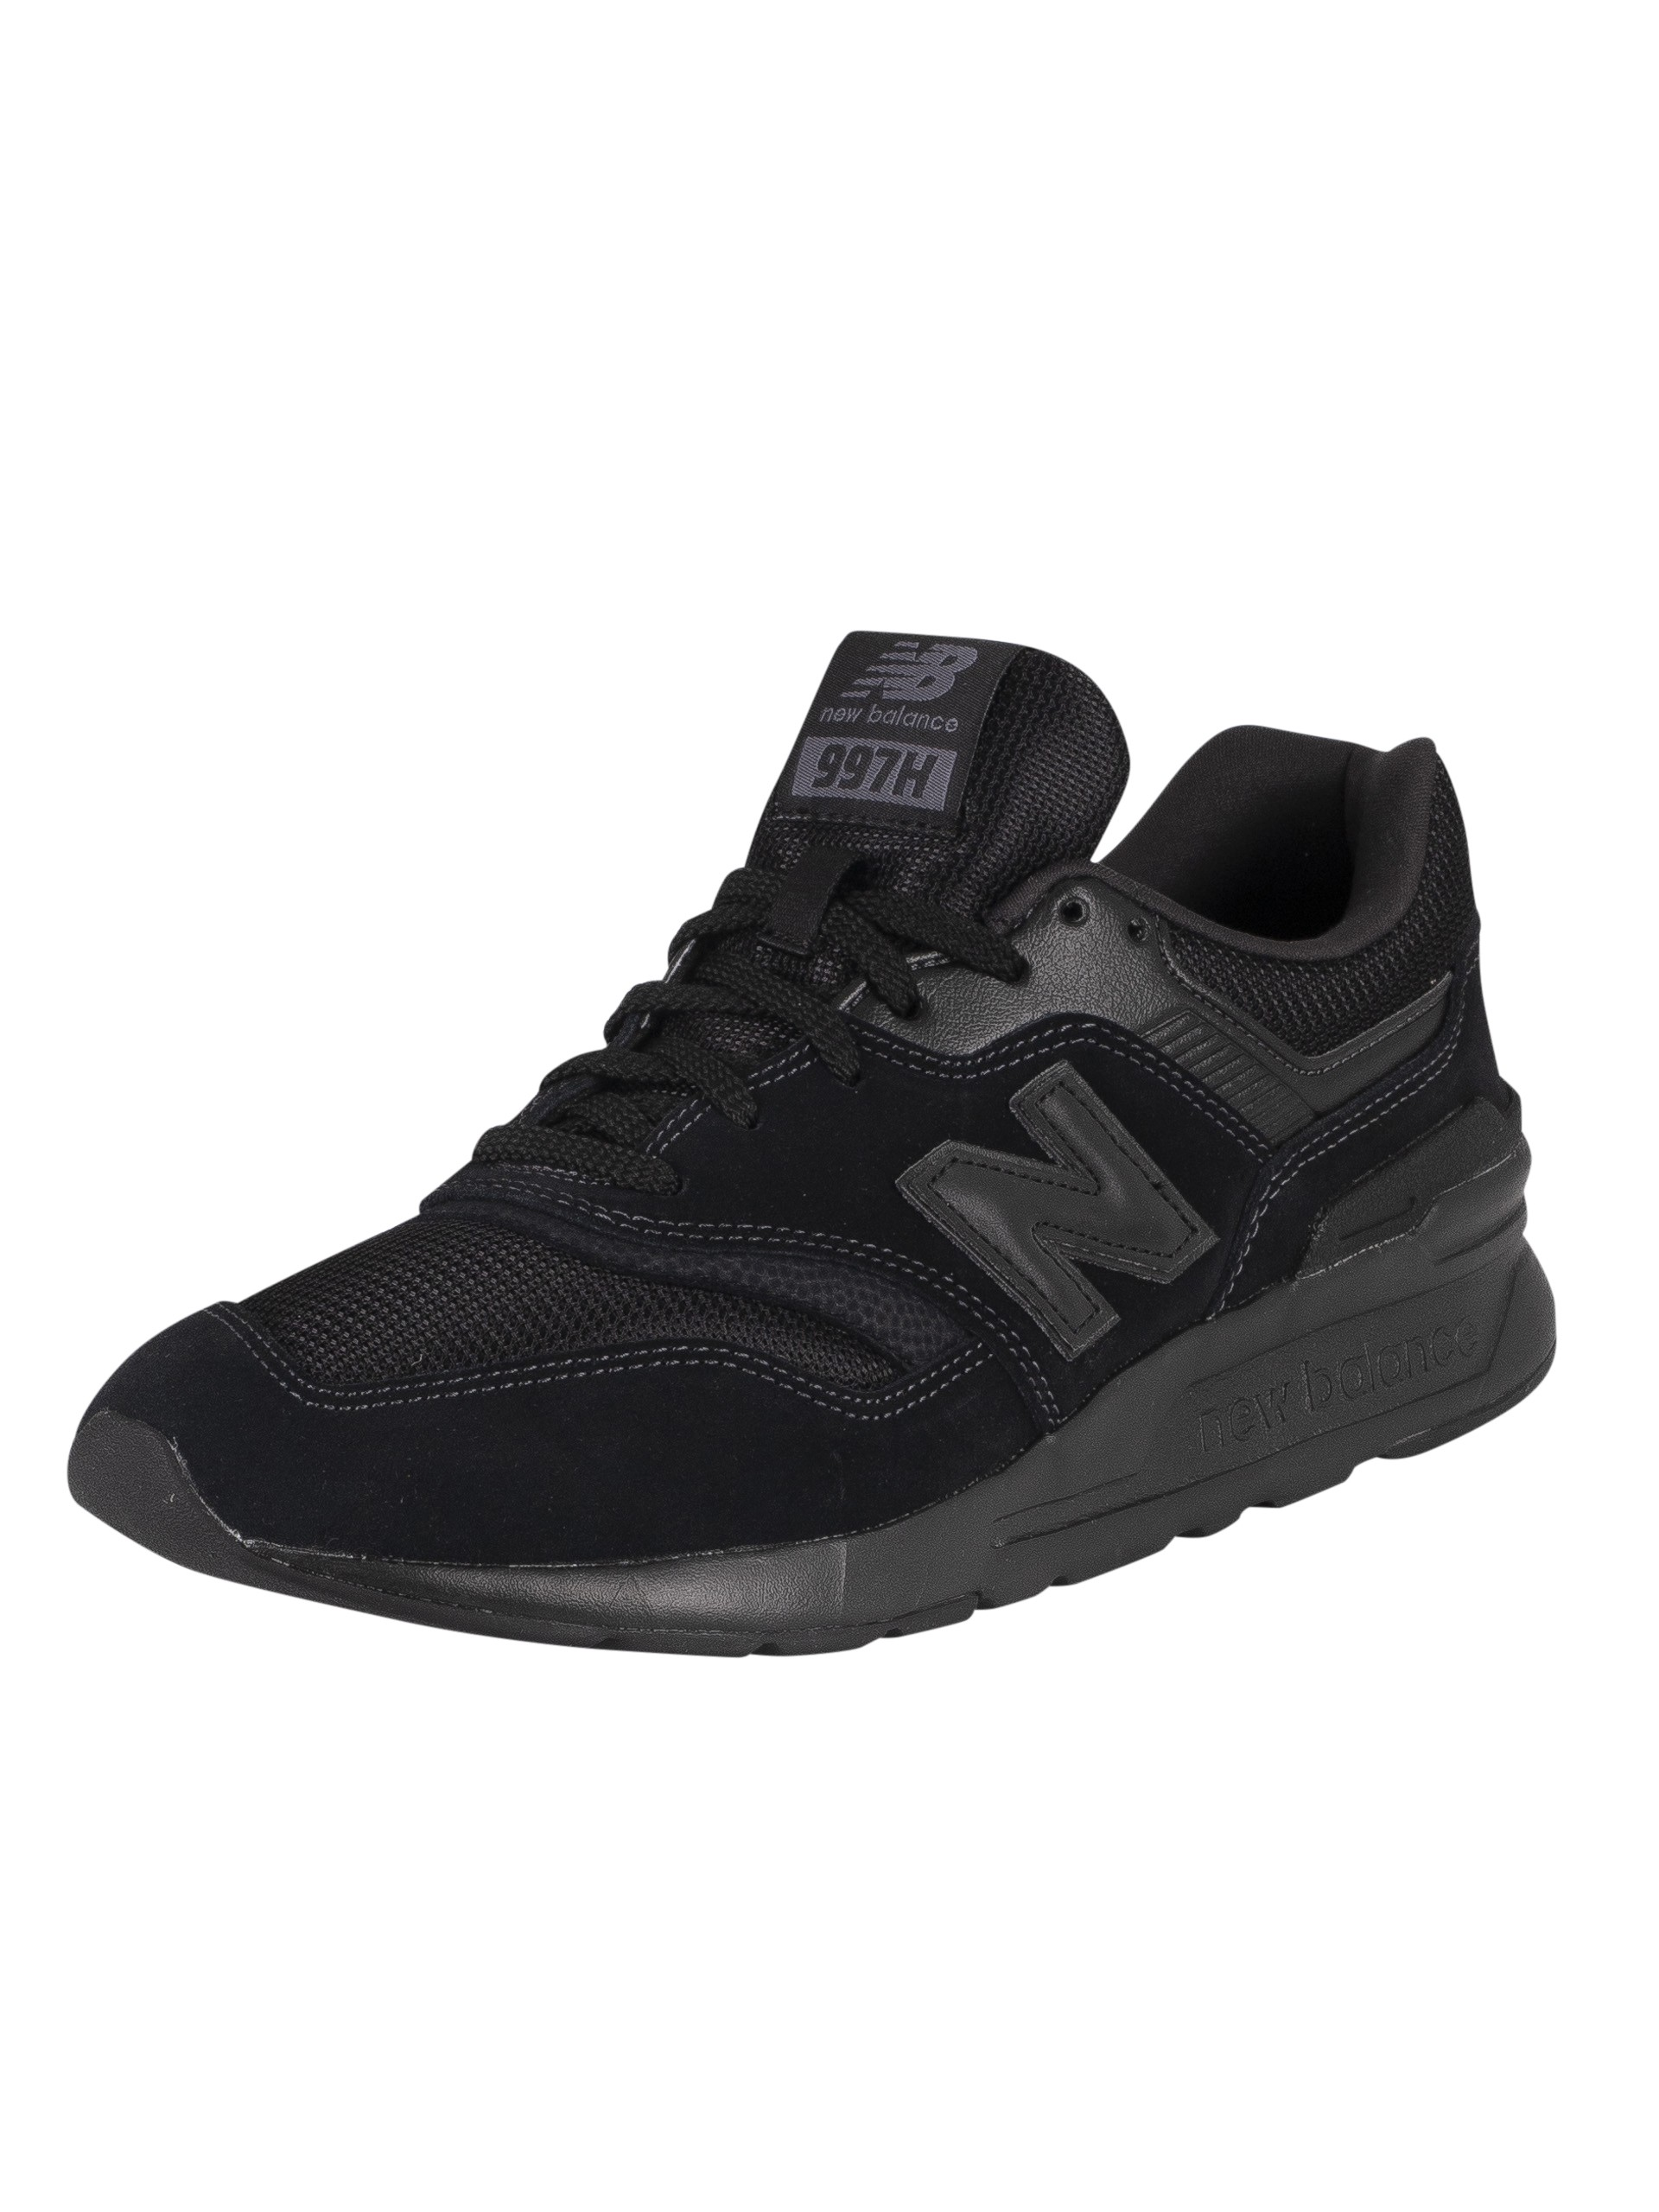 basket new balance 997h noir